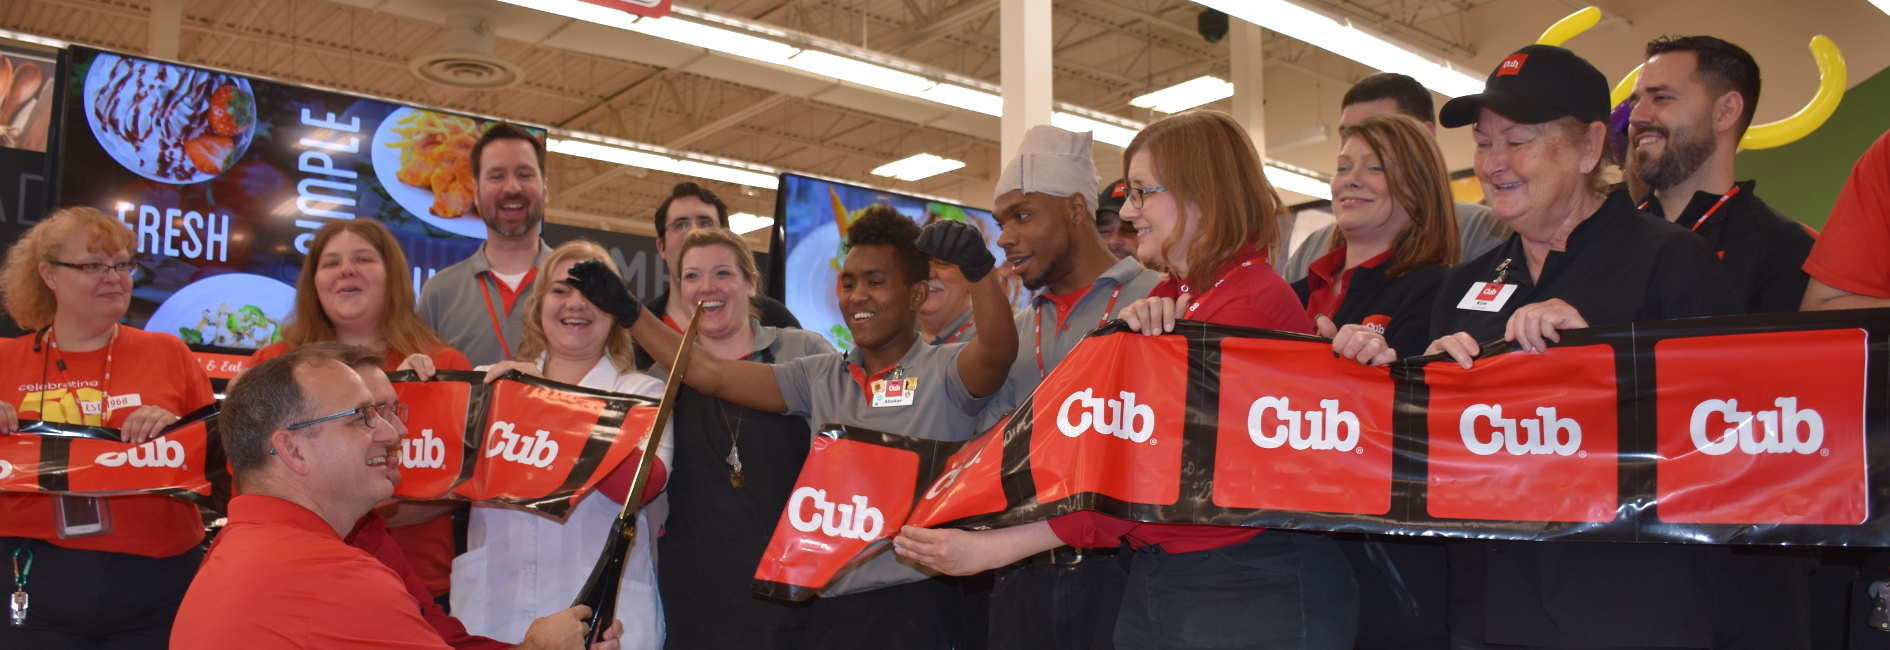 Cub Foods Update from President Utecht